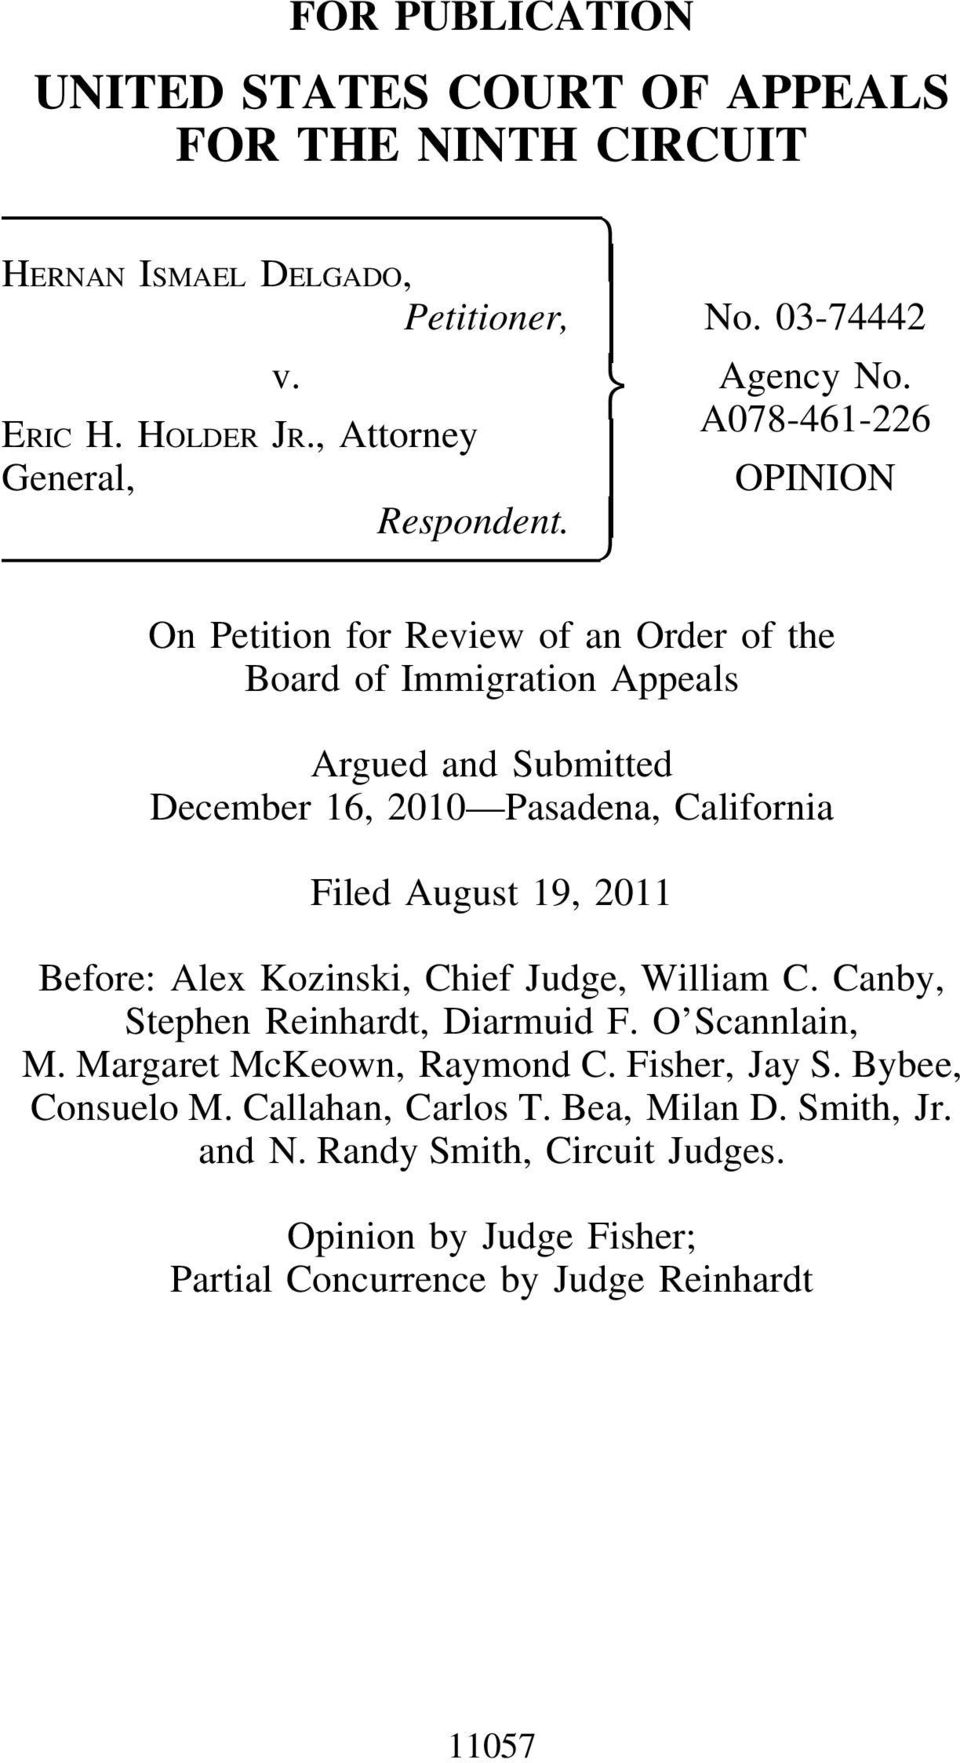 On Petition for Review of an Order of the Board of Immigration Appeals Argued and Submitted December 16, 2010 Pasadena, California Filed August 19, 2011 Before: Alex